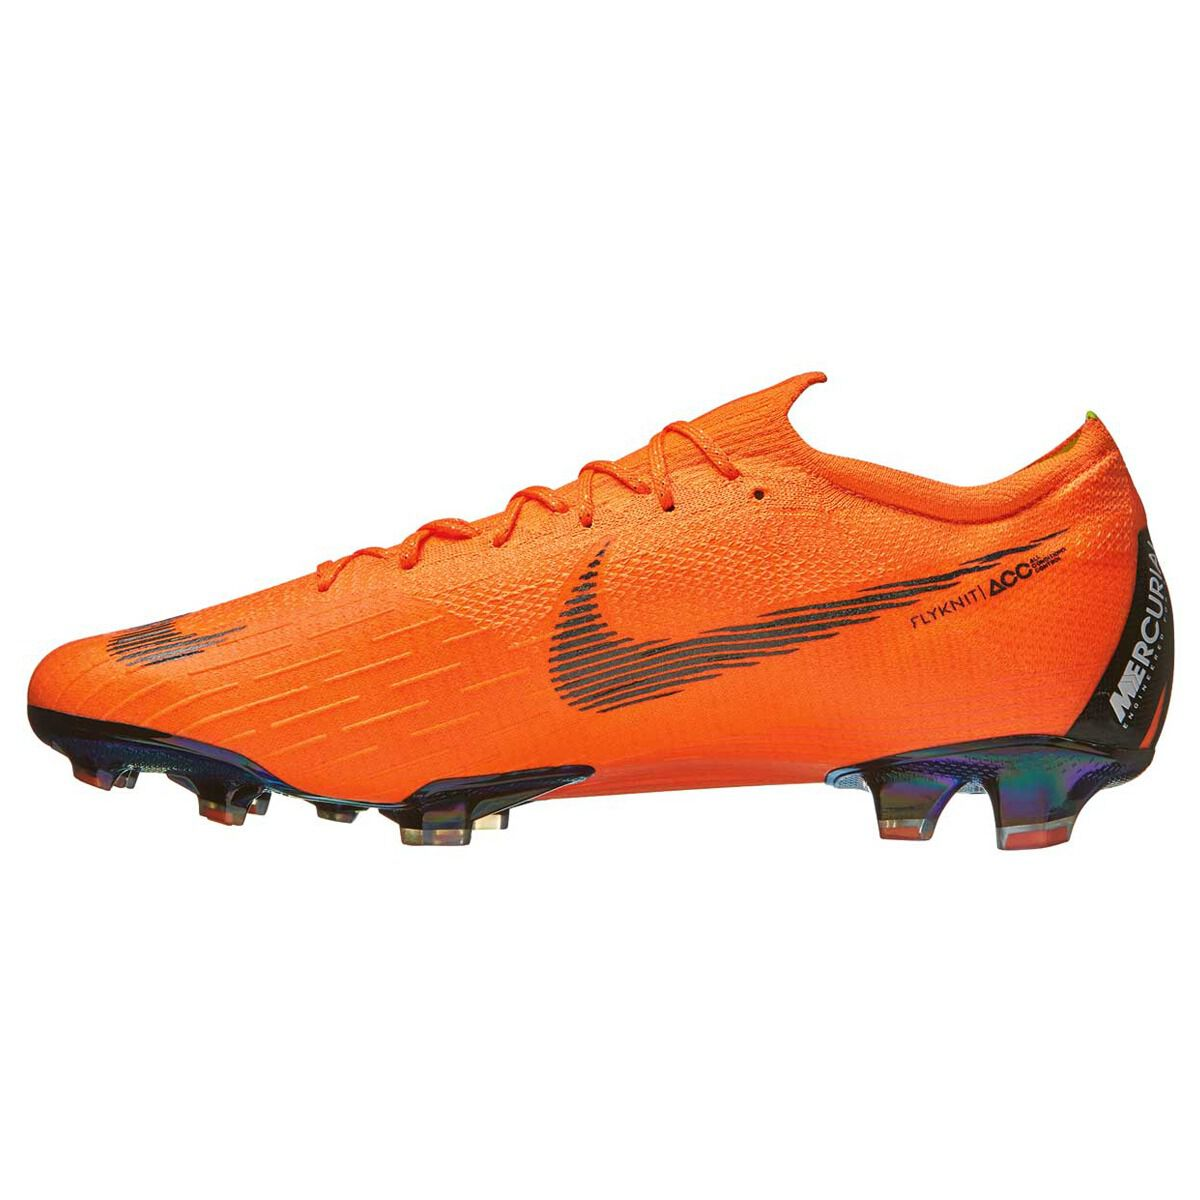 half off 1c4df 15e13 ... denmark nike mercurial vapor xii mens football boots orange black us 9  adult orange 9936e d1ea6